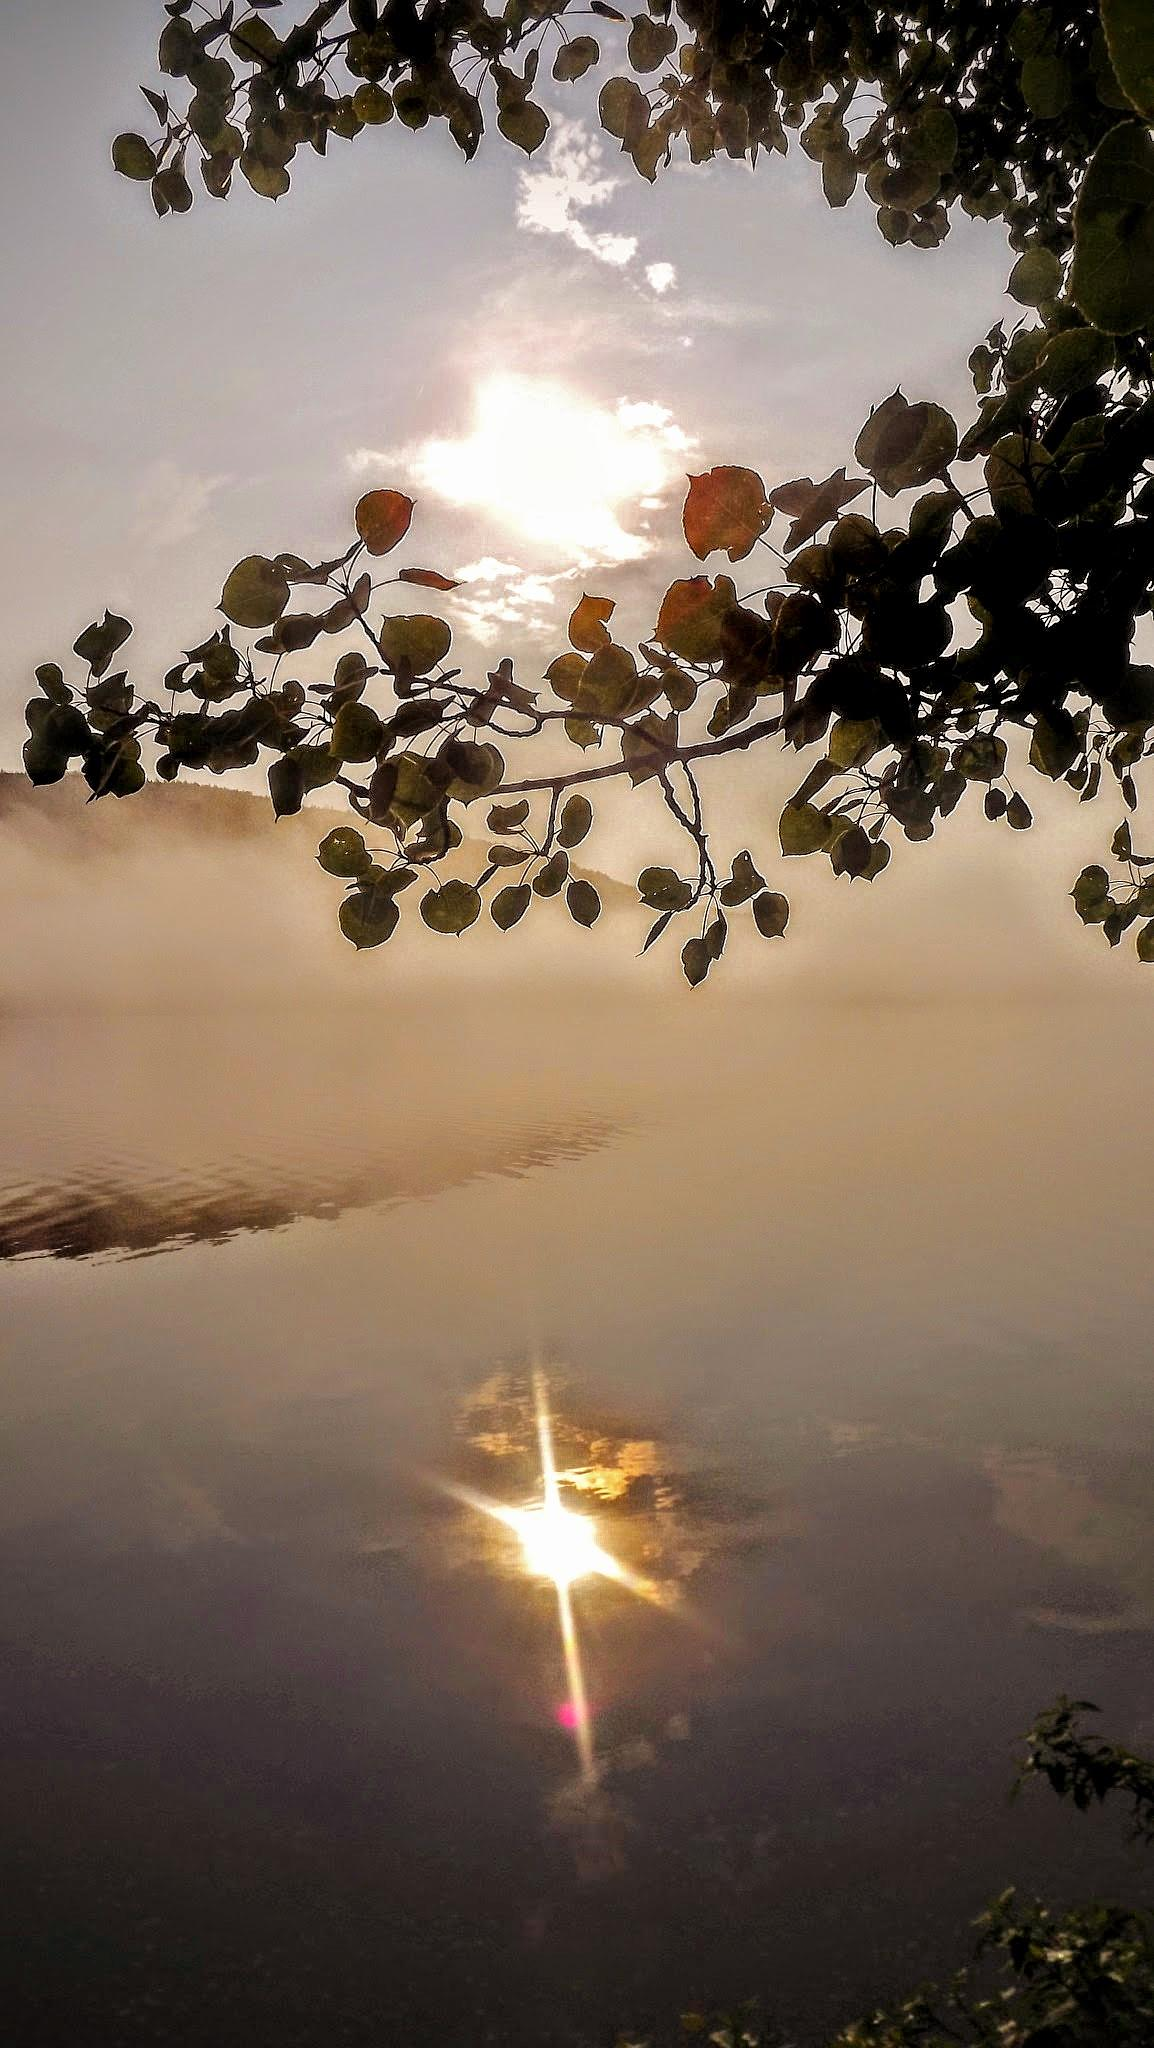 Sunrise reflection by real.michaud.5036